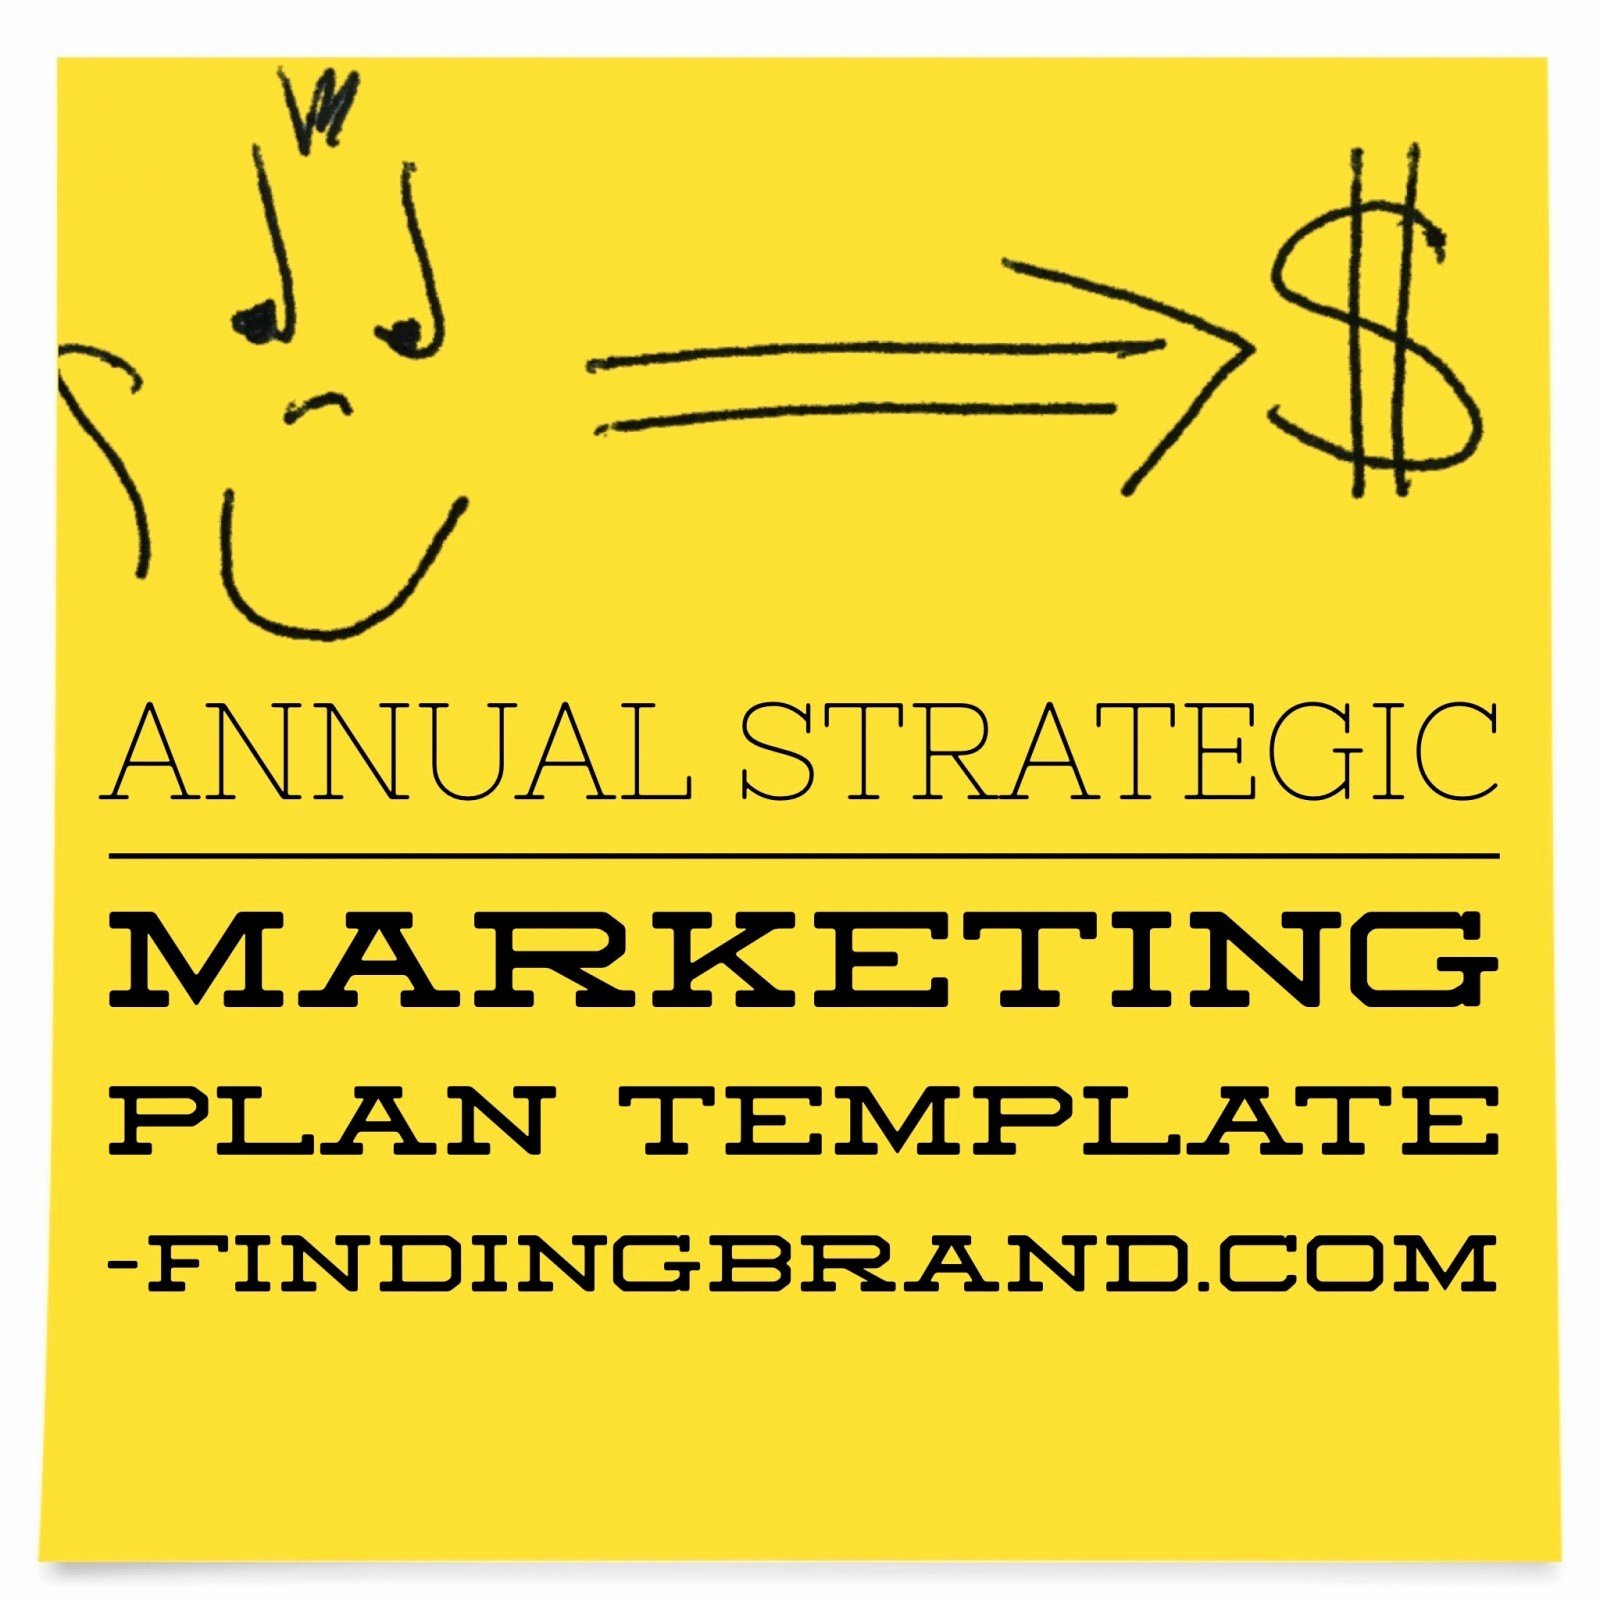 Annual Strategic Marketing Plan Template Paradux Media